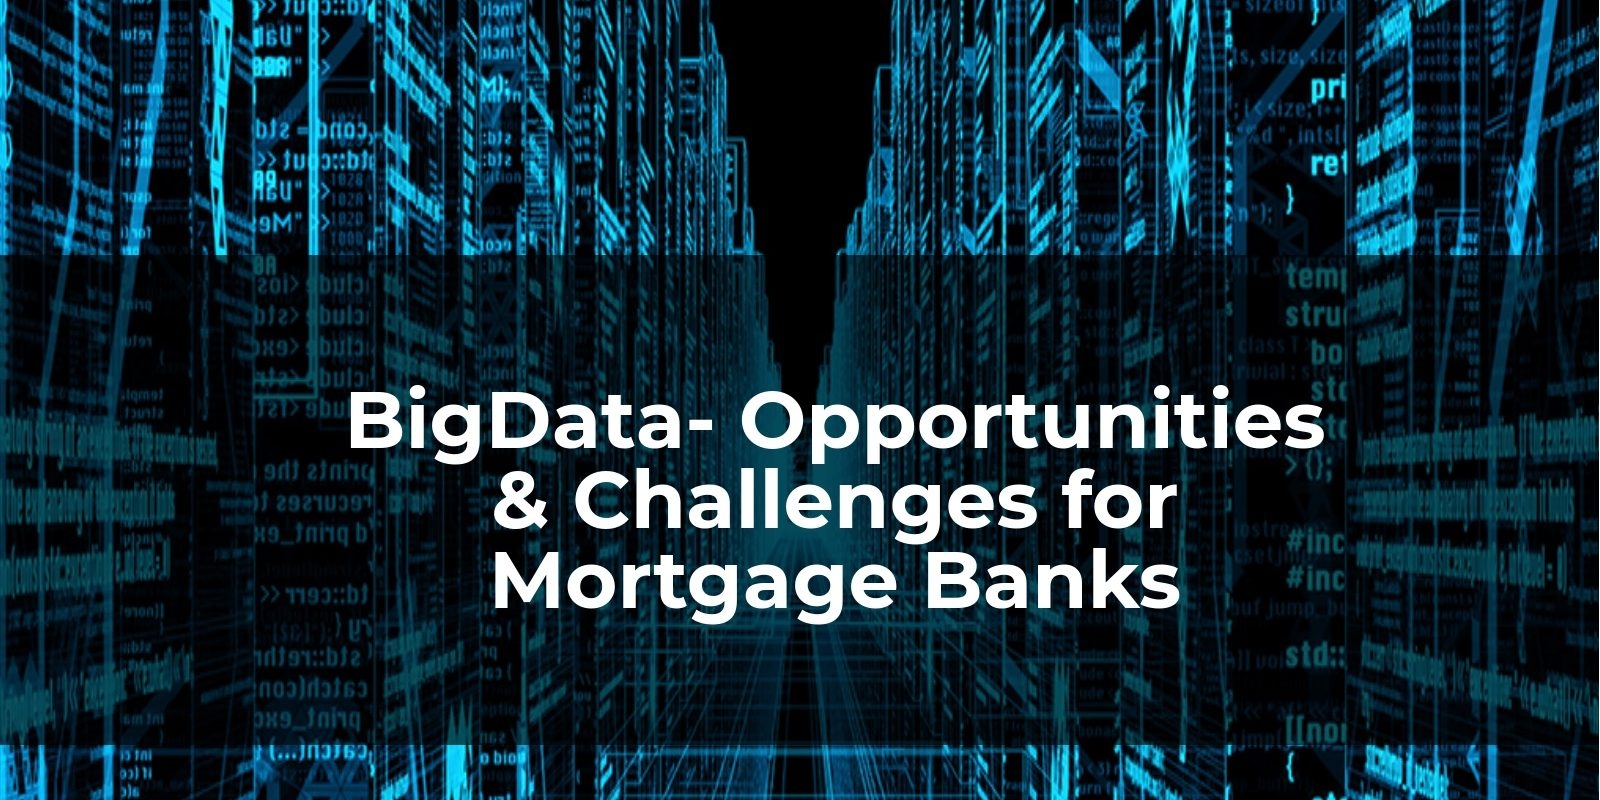 Big Data - Opportunities & Challenges for Mortagage Banking